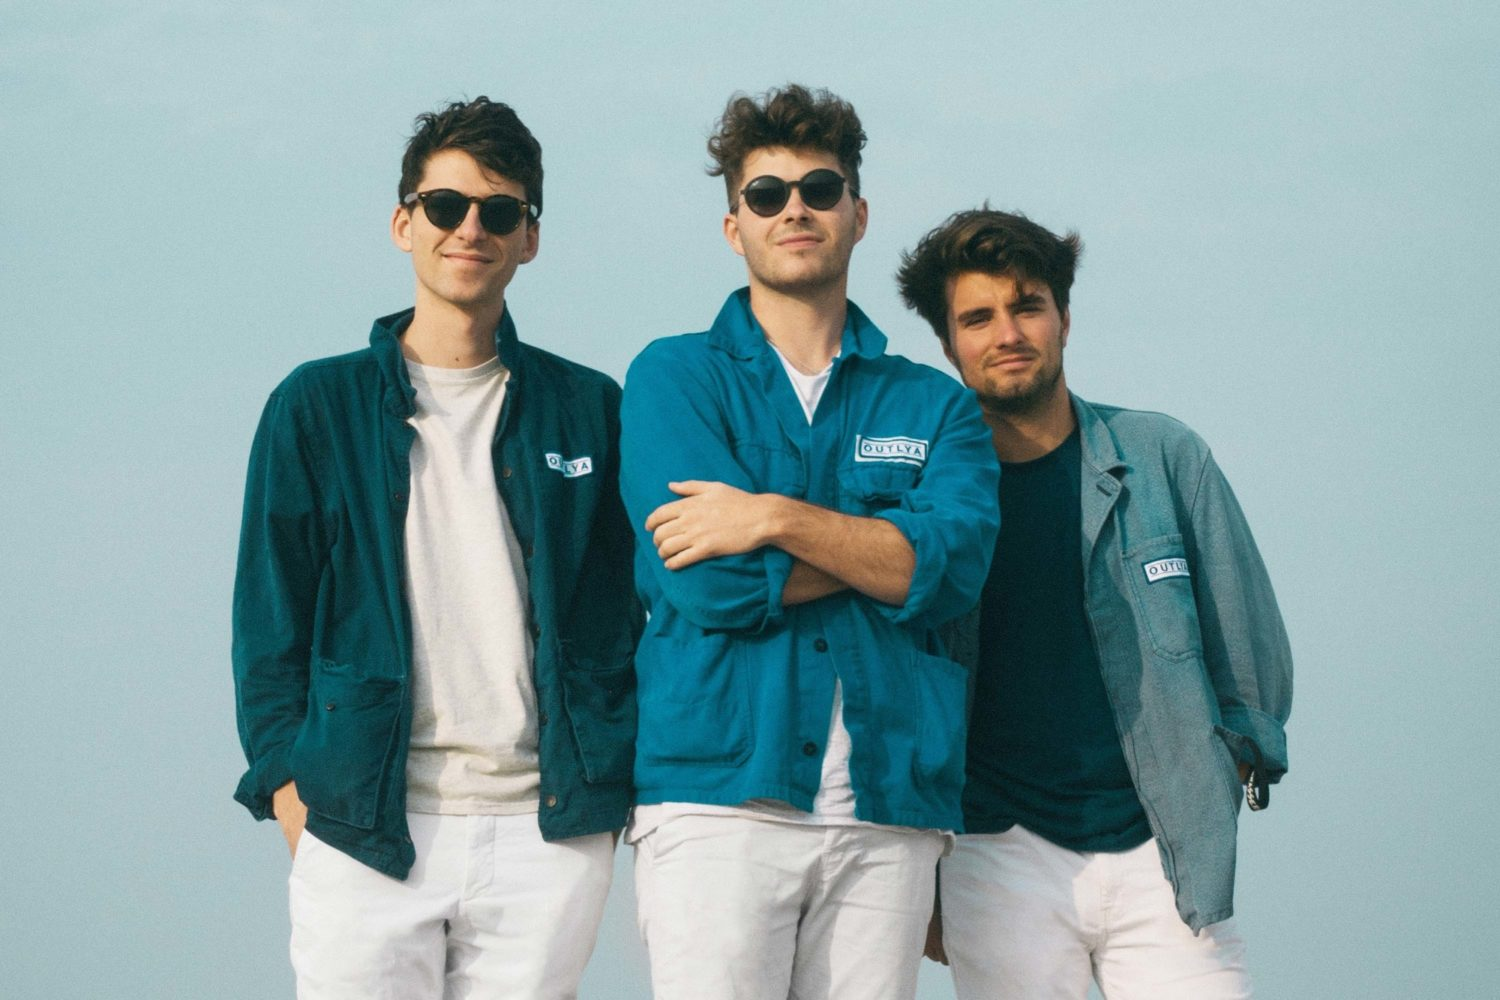 OUTLYA make huge pop tunes to lose yourself to